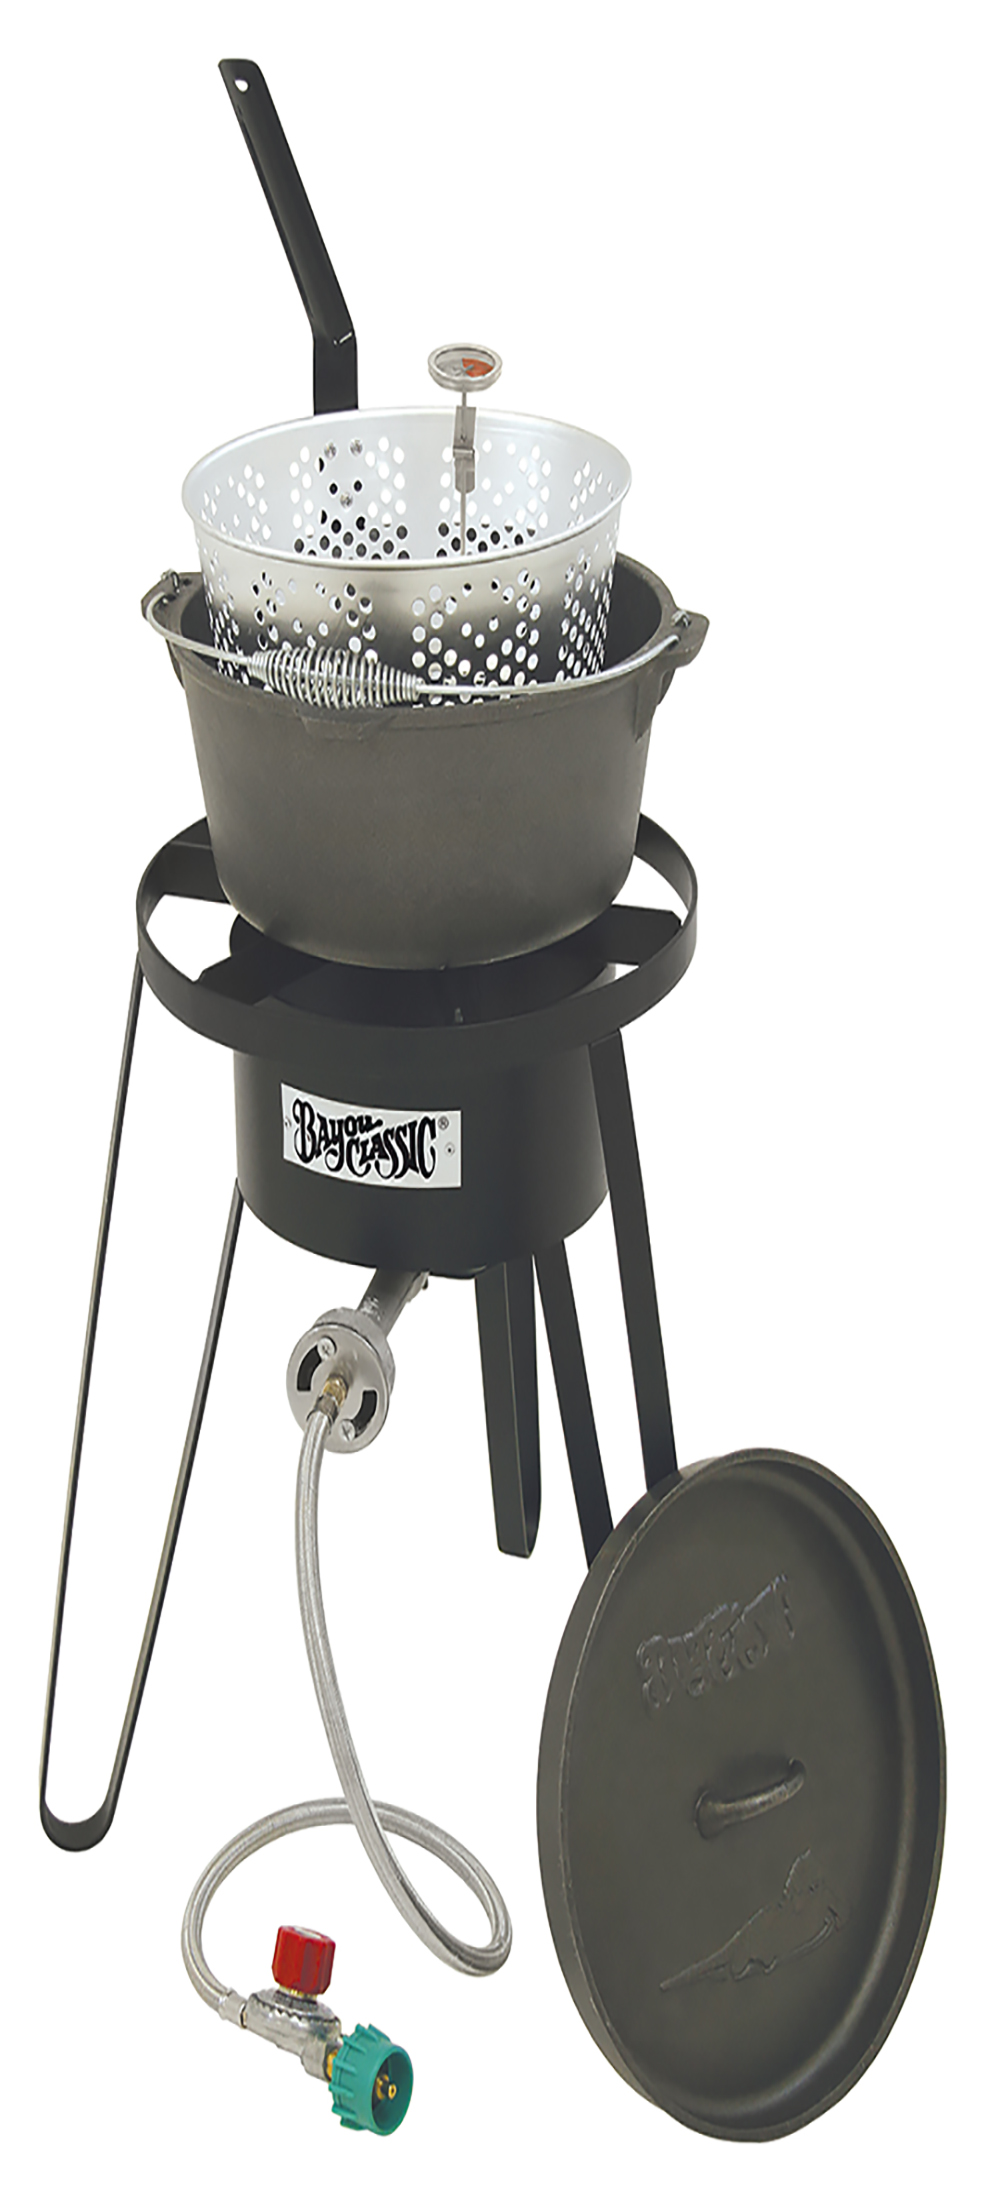 Barbour Classic B159 Outdoor Fish Cooker - 21 Inch Tall Frame with Cast Iron Fry Pot